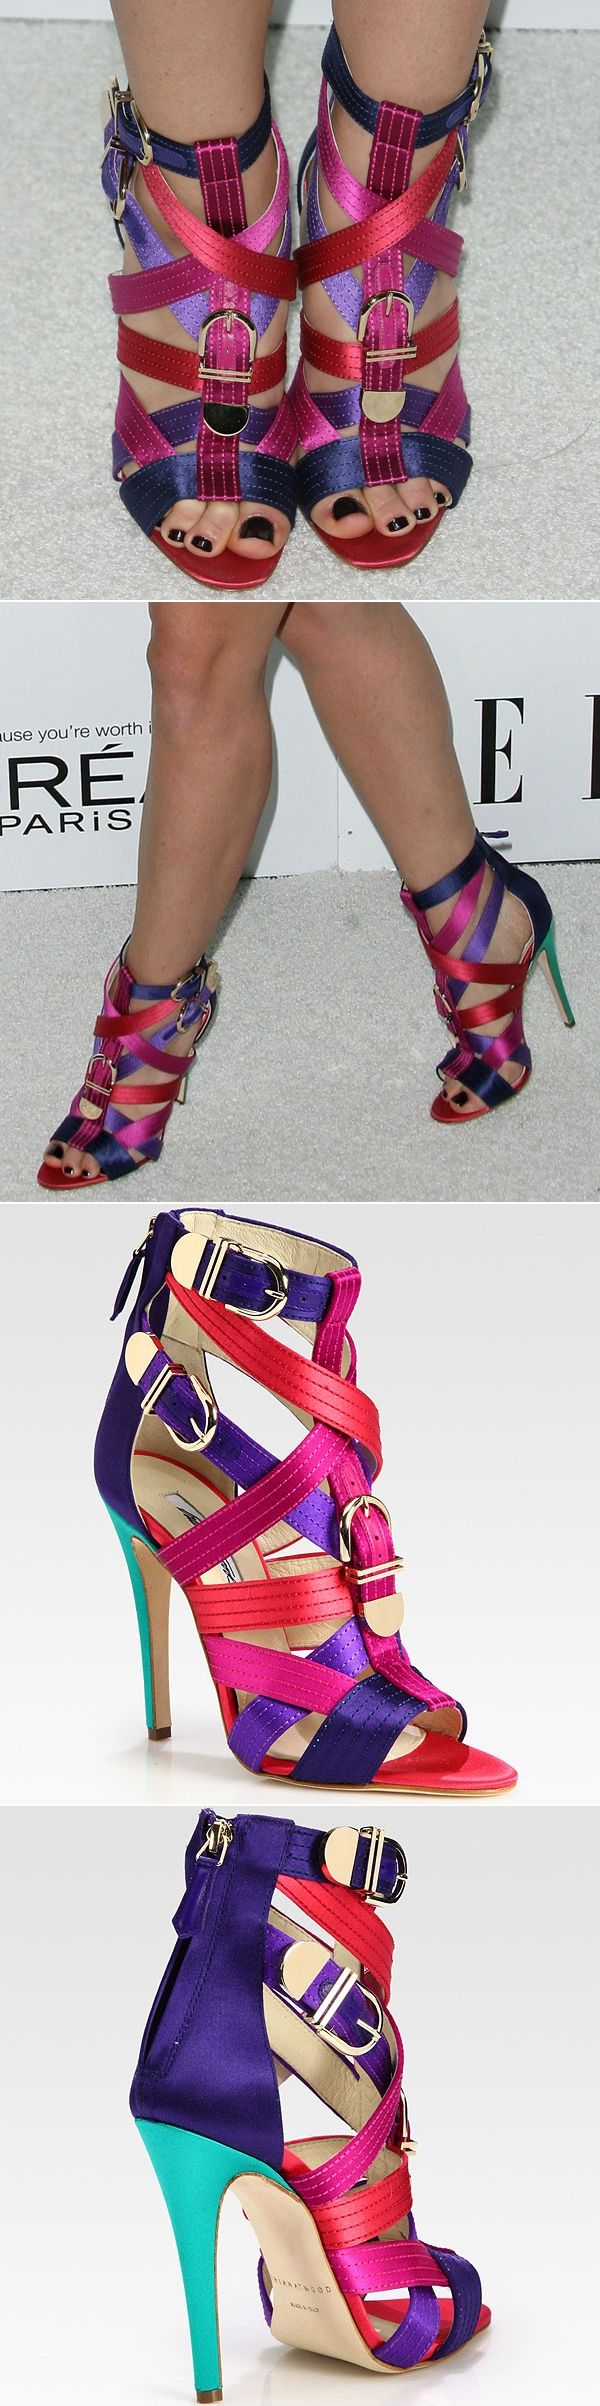 Jayma Mays rocking Brian Atwood 'Encanta' buckled multicolored strappy satin sandals